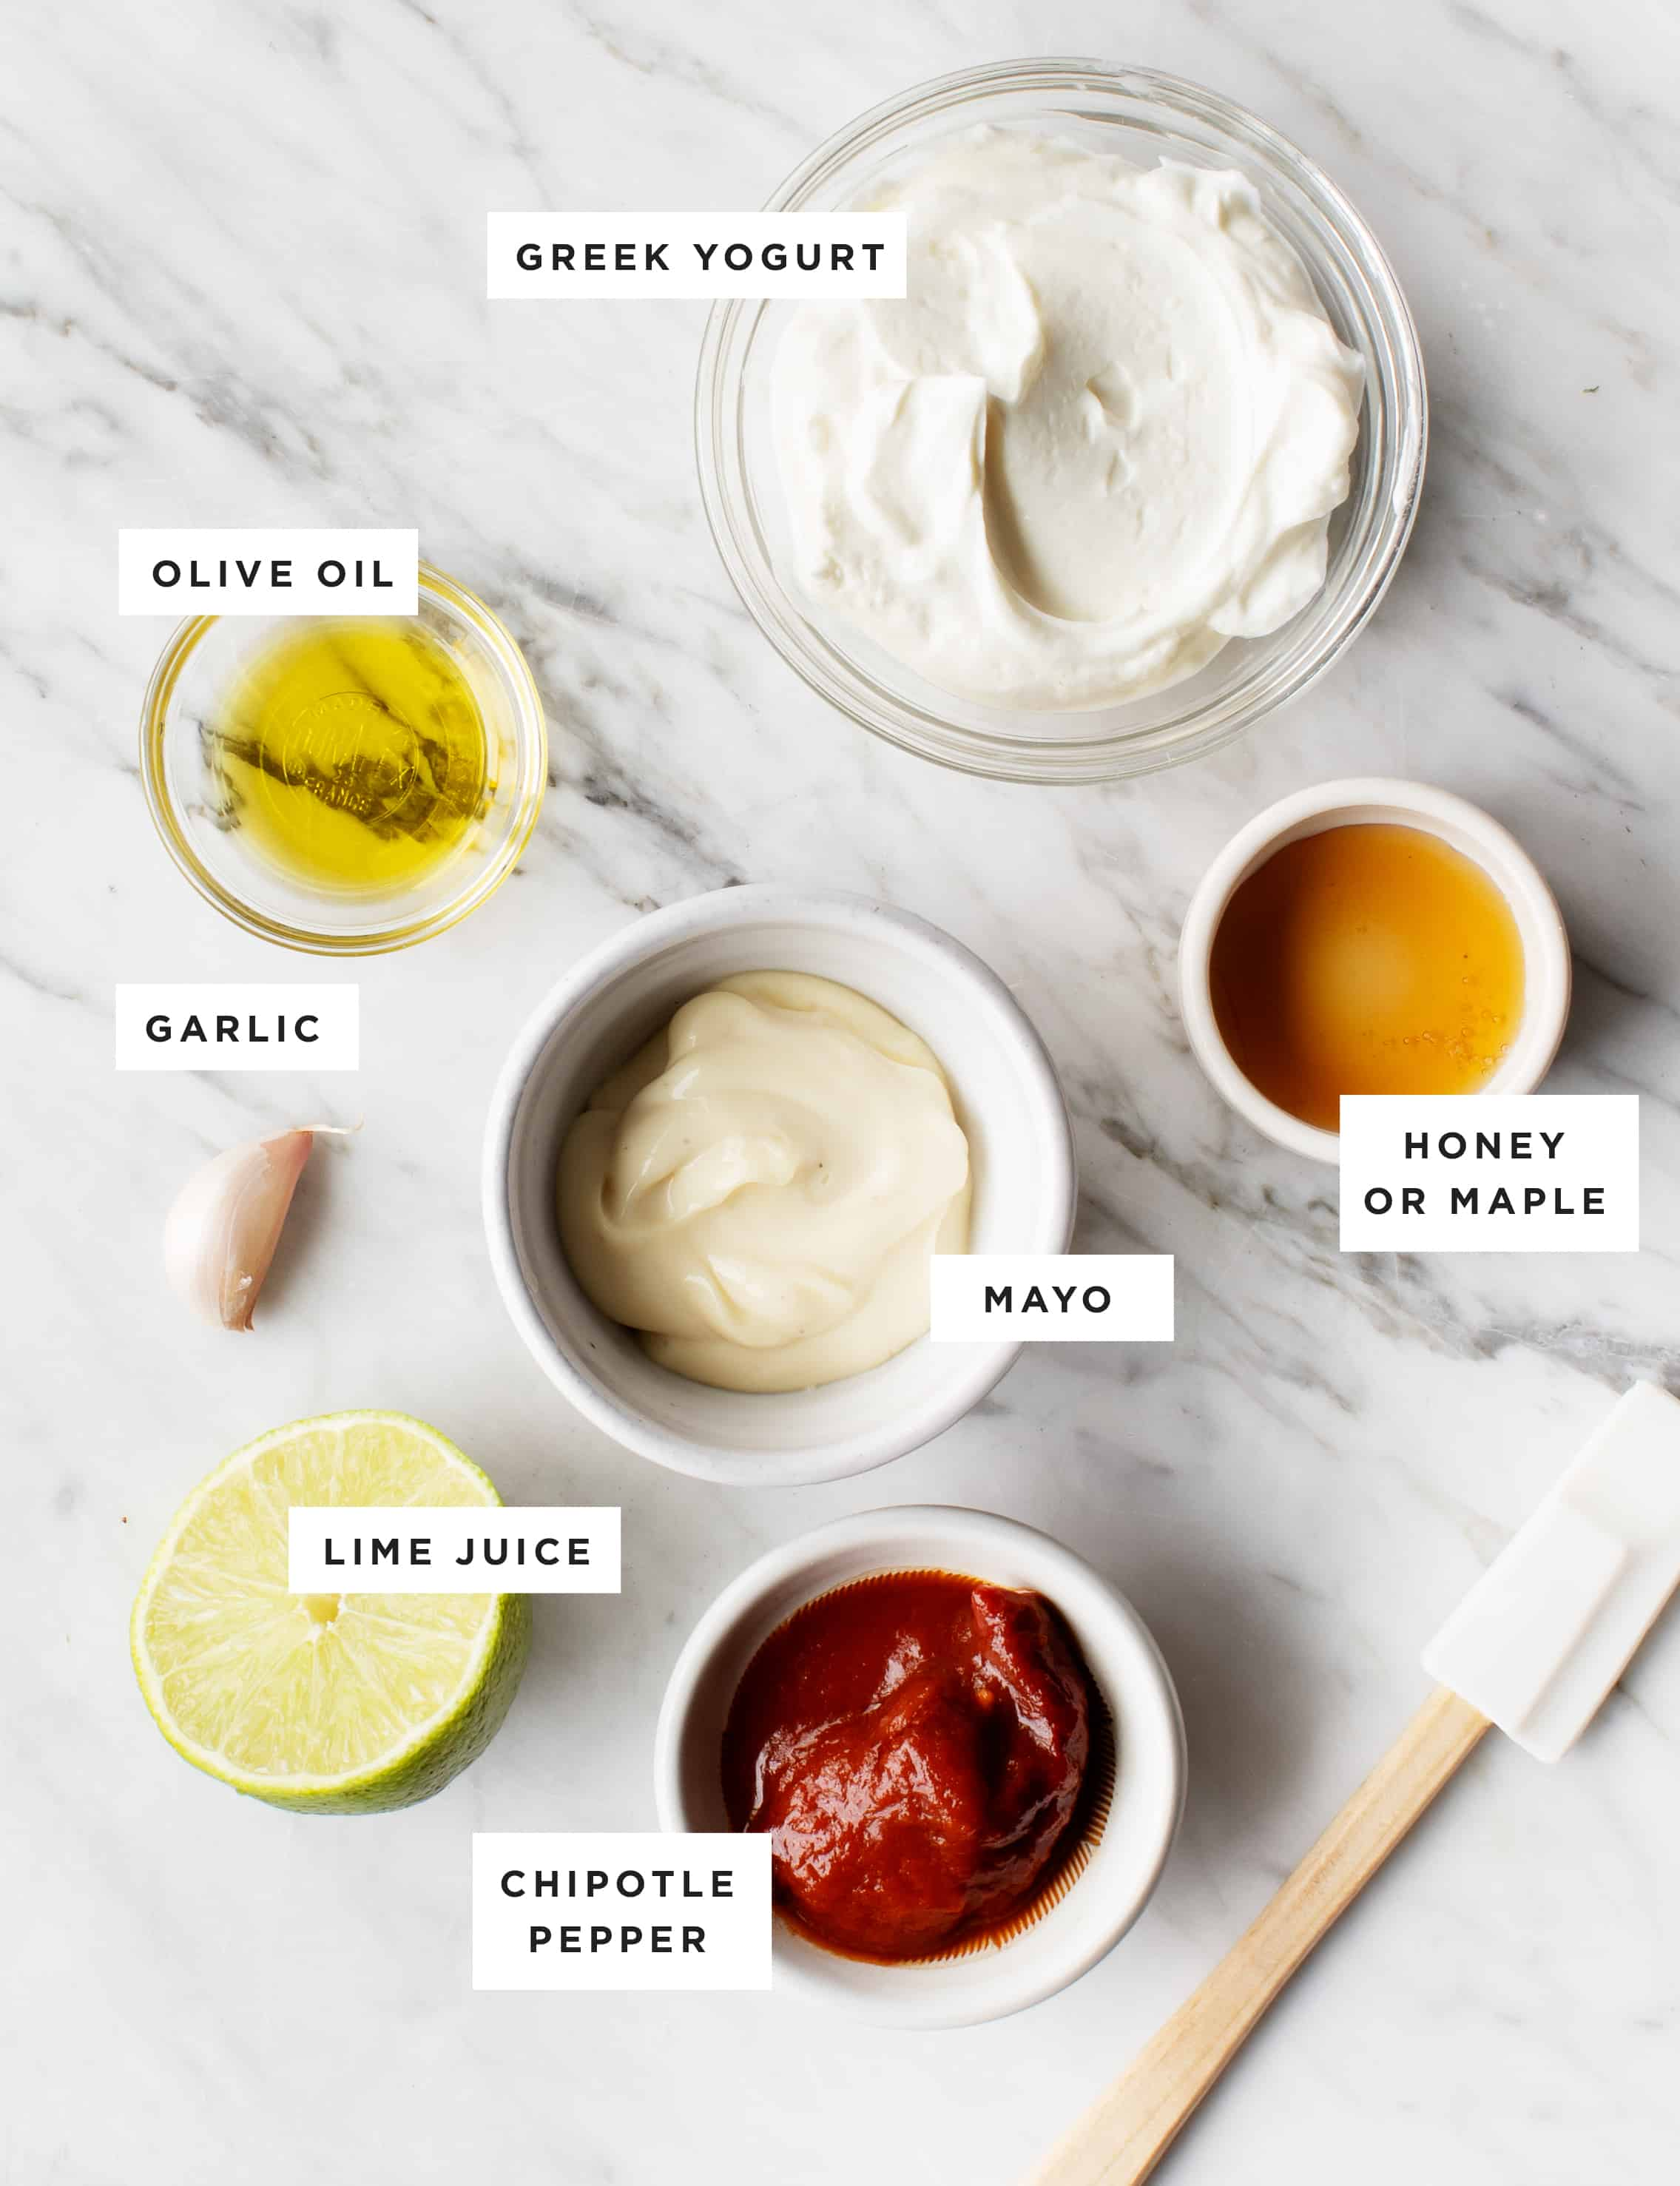 Chipotle mayo recipe ingredients